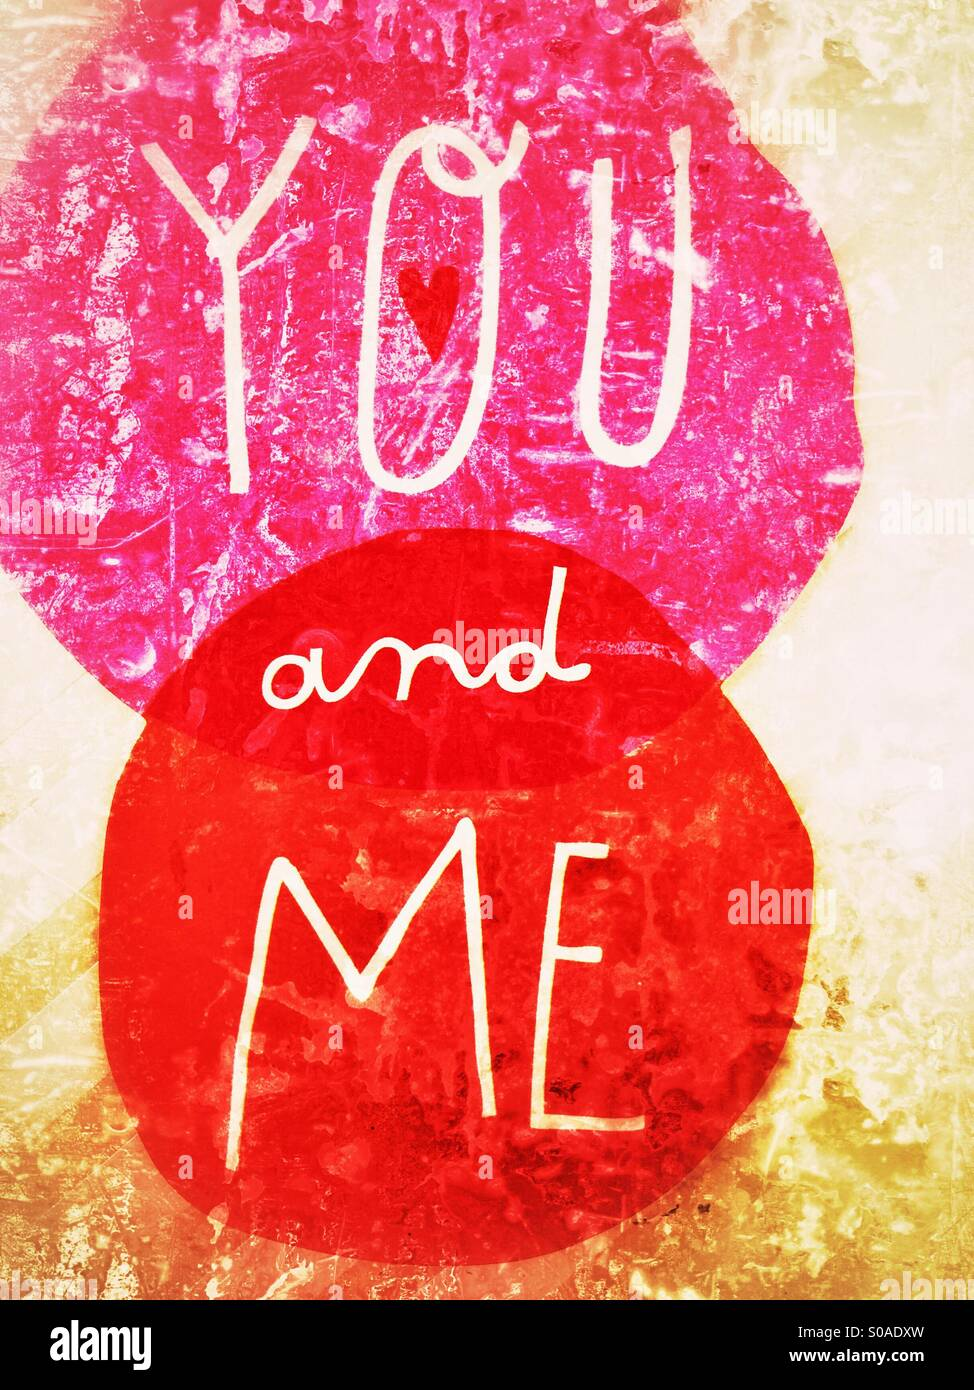 Textured Grungy Valentine S Day Artwork That Says You And Me Stock